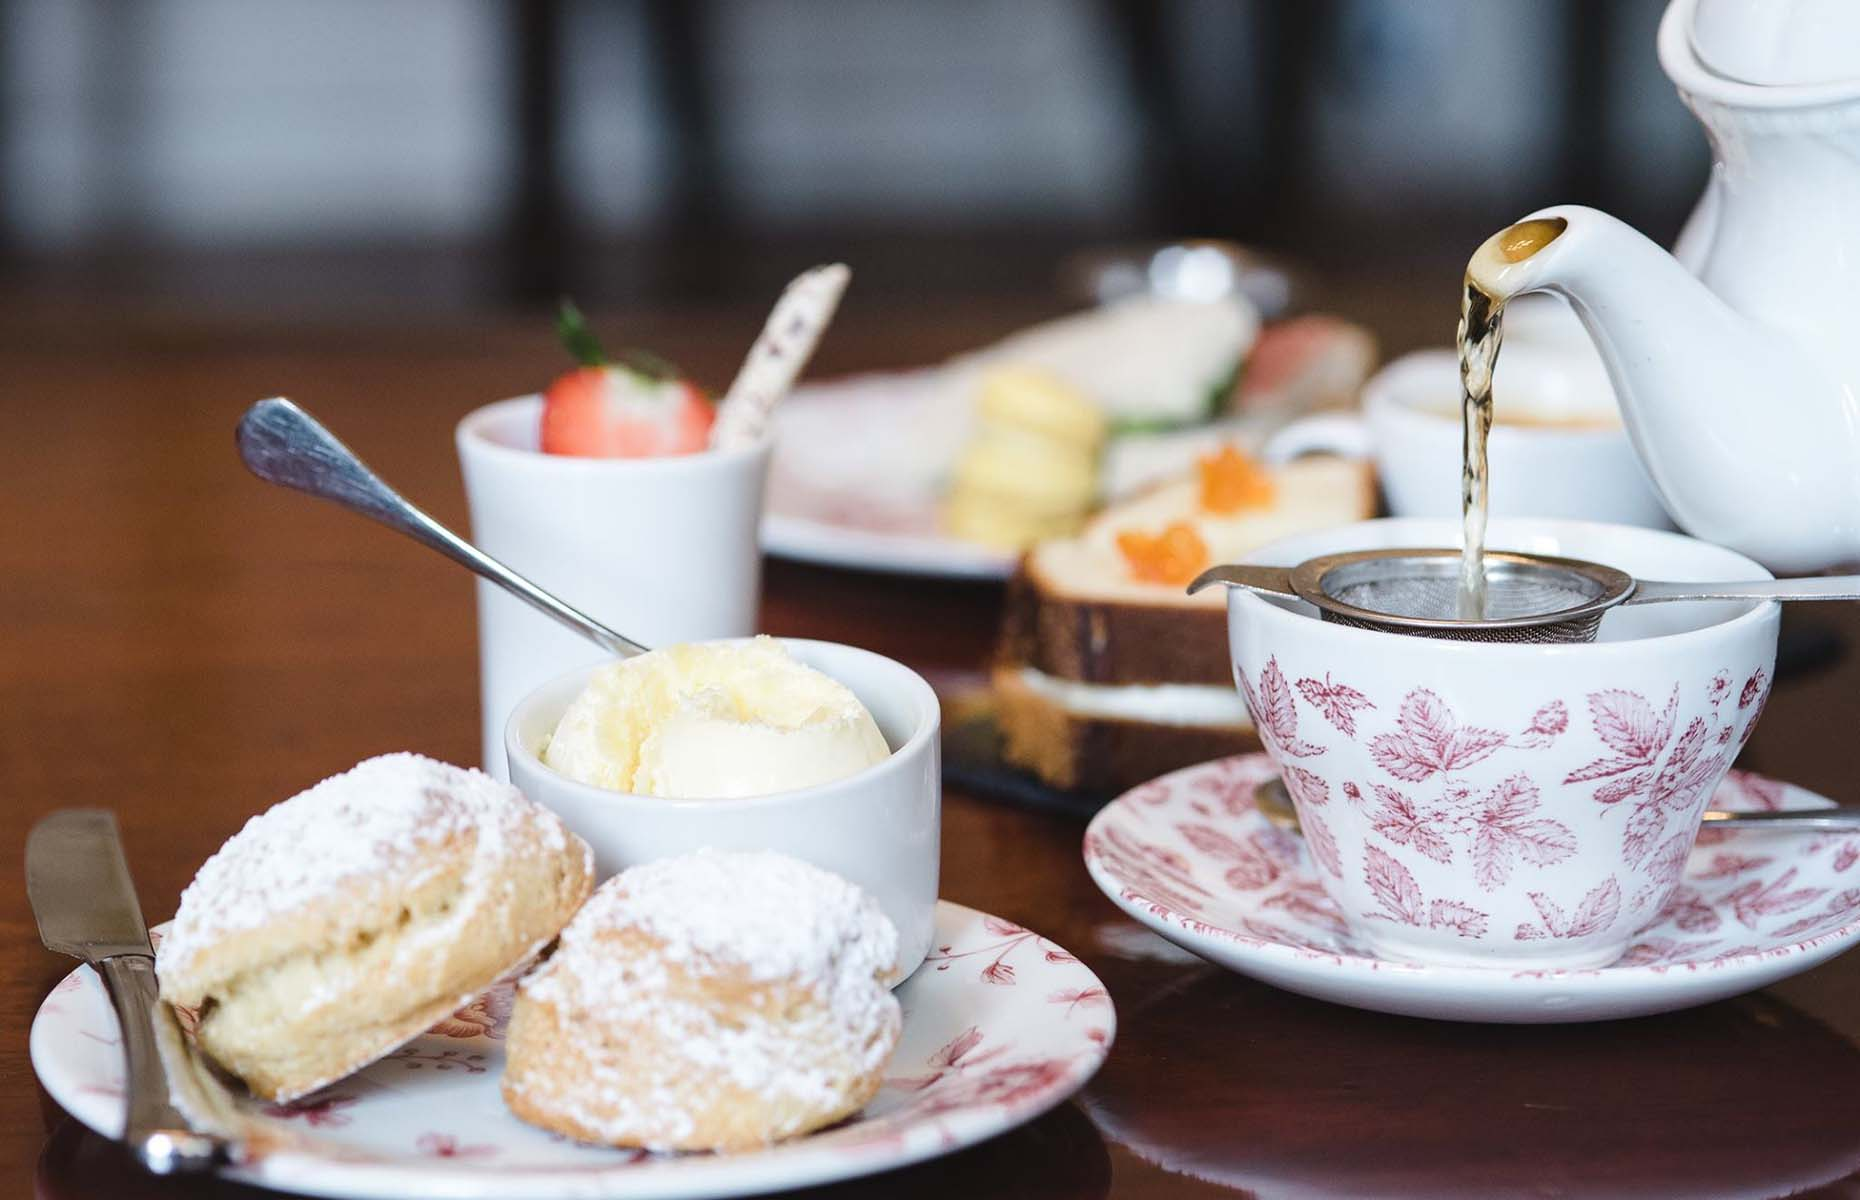 Afternoon tea at The Feathers (Image: Feathers Hotel Woodstock/Facebook)